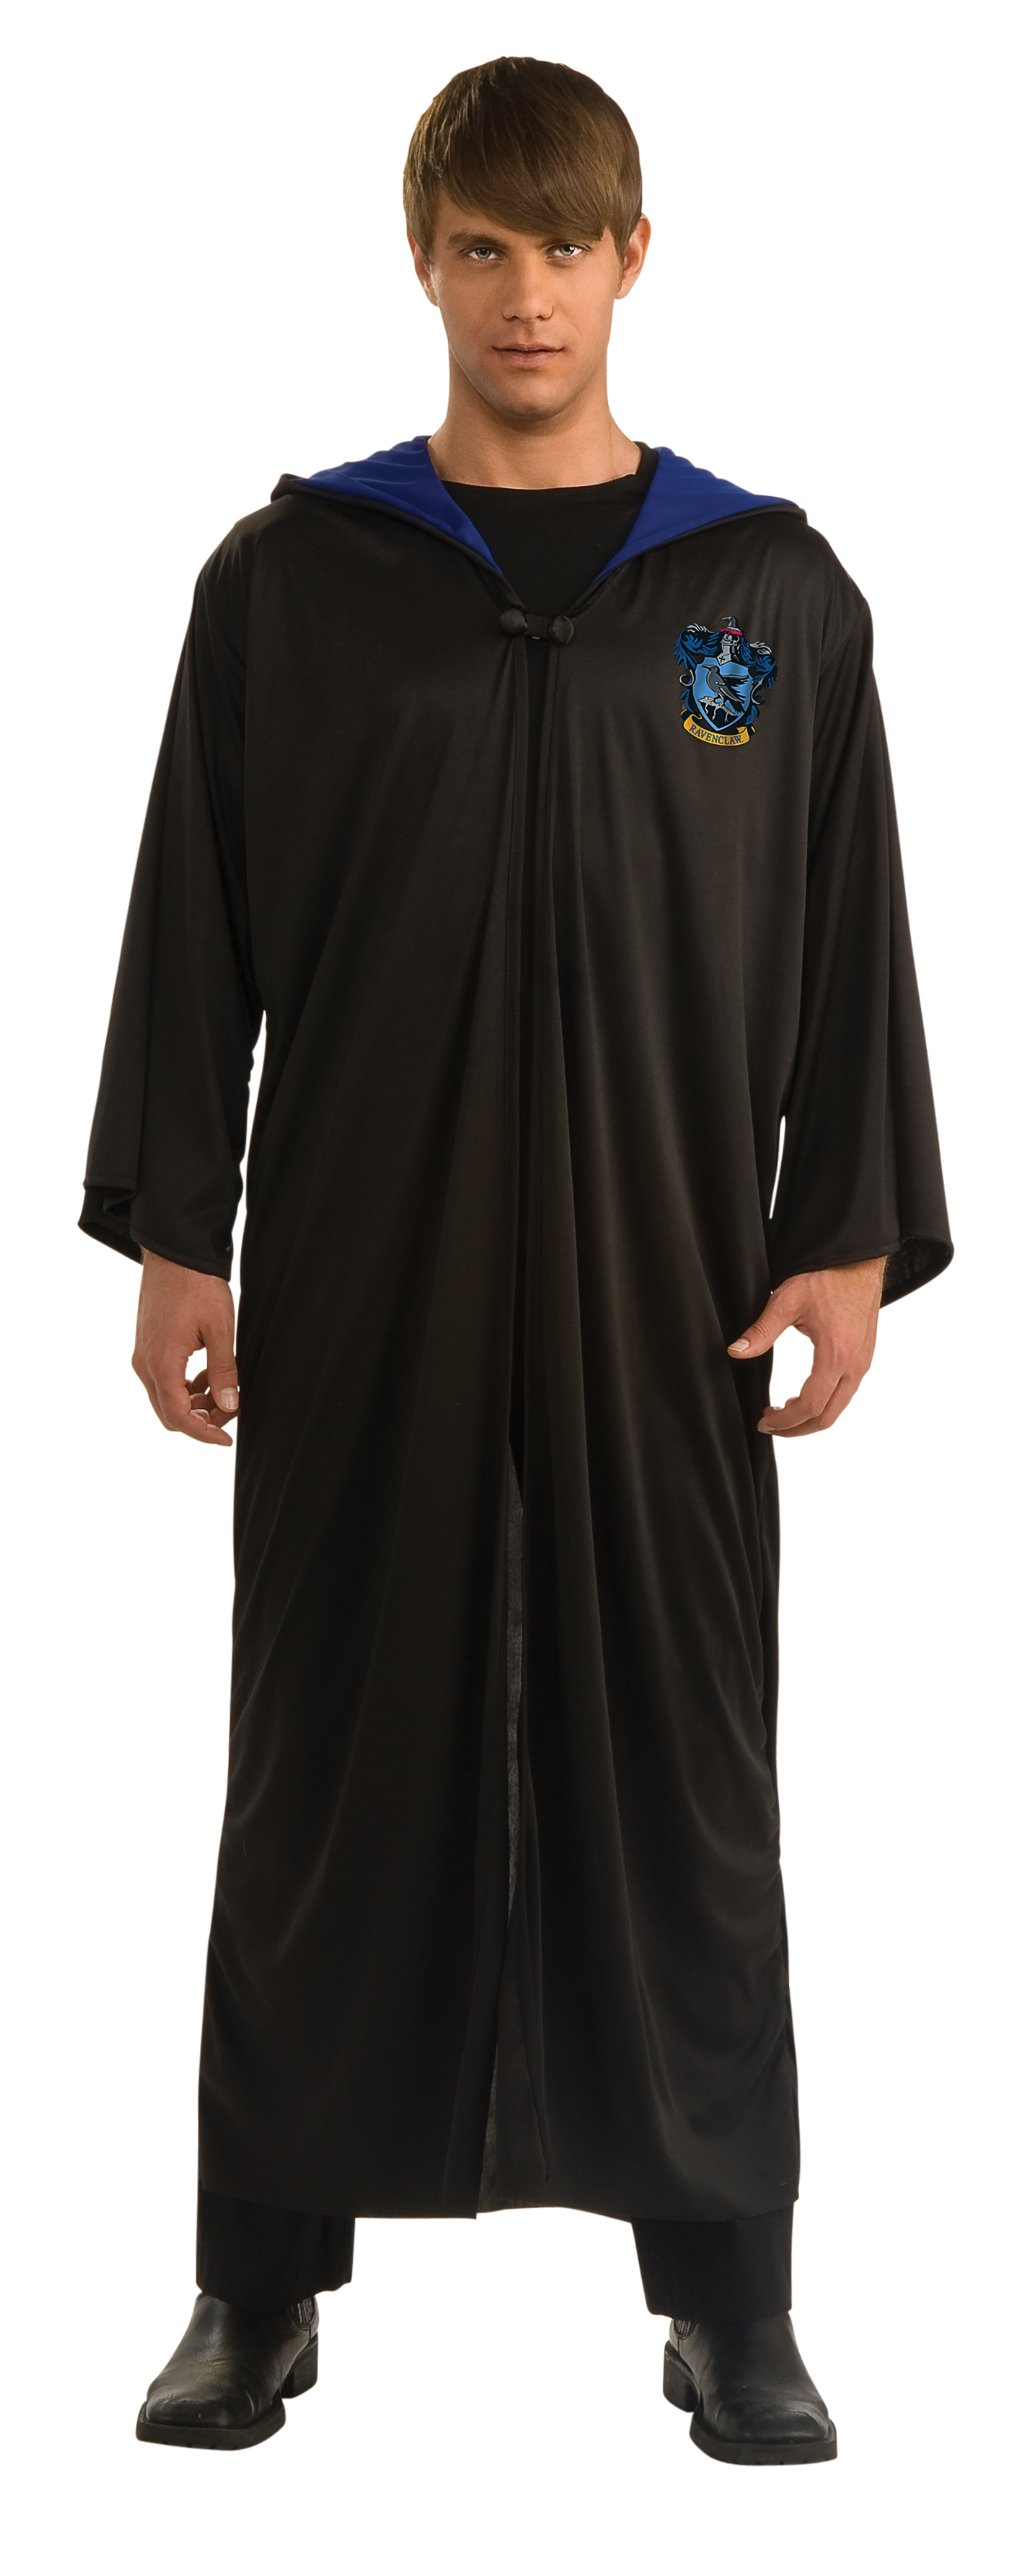 Harry Potter Adult Ravenclaw Robe, Black, X-Large Costume